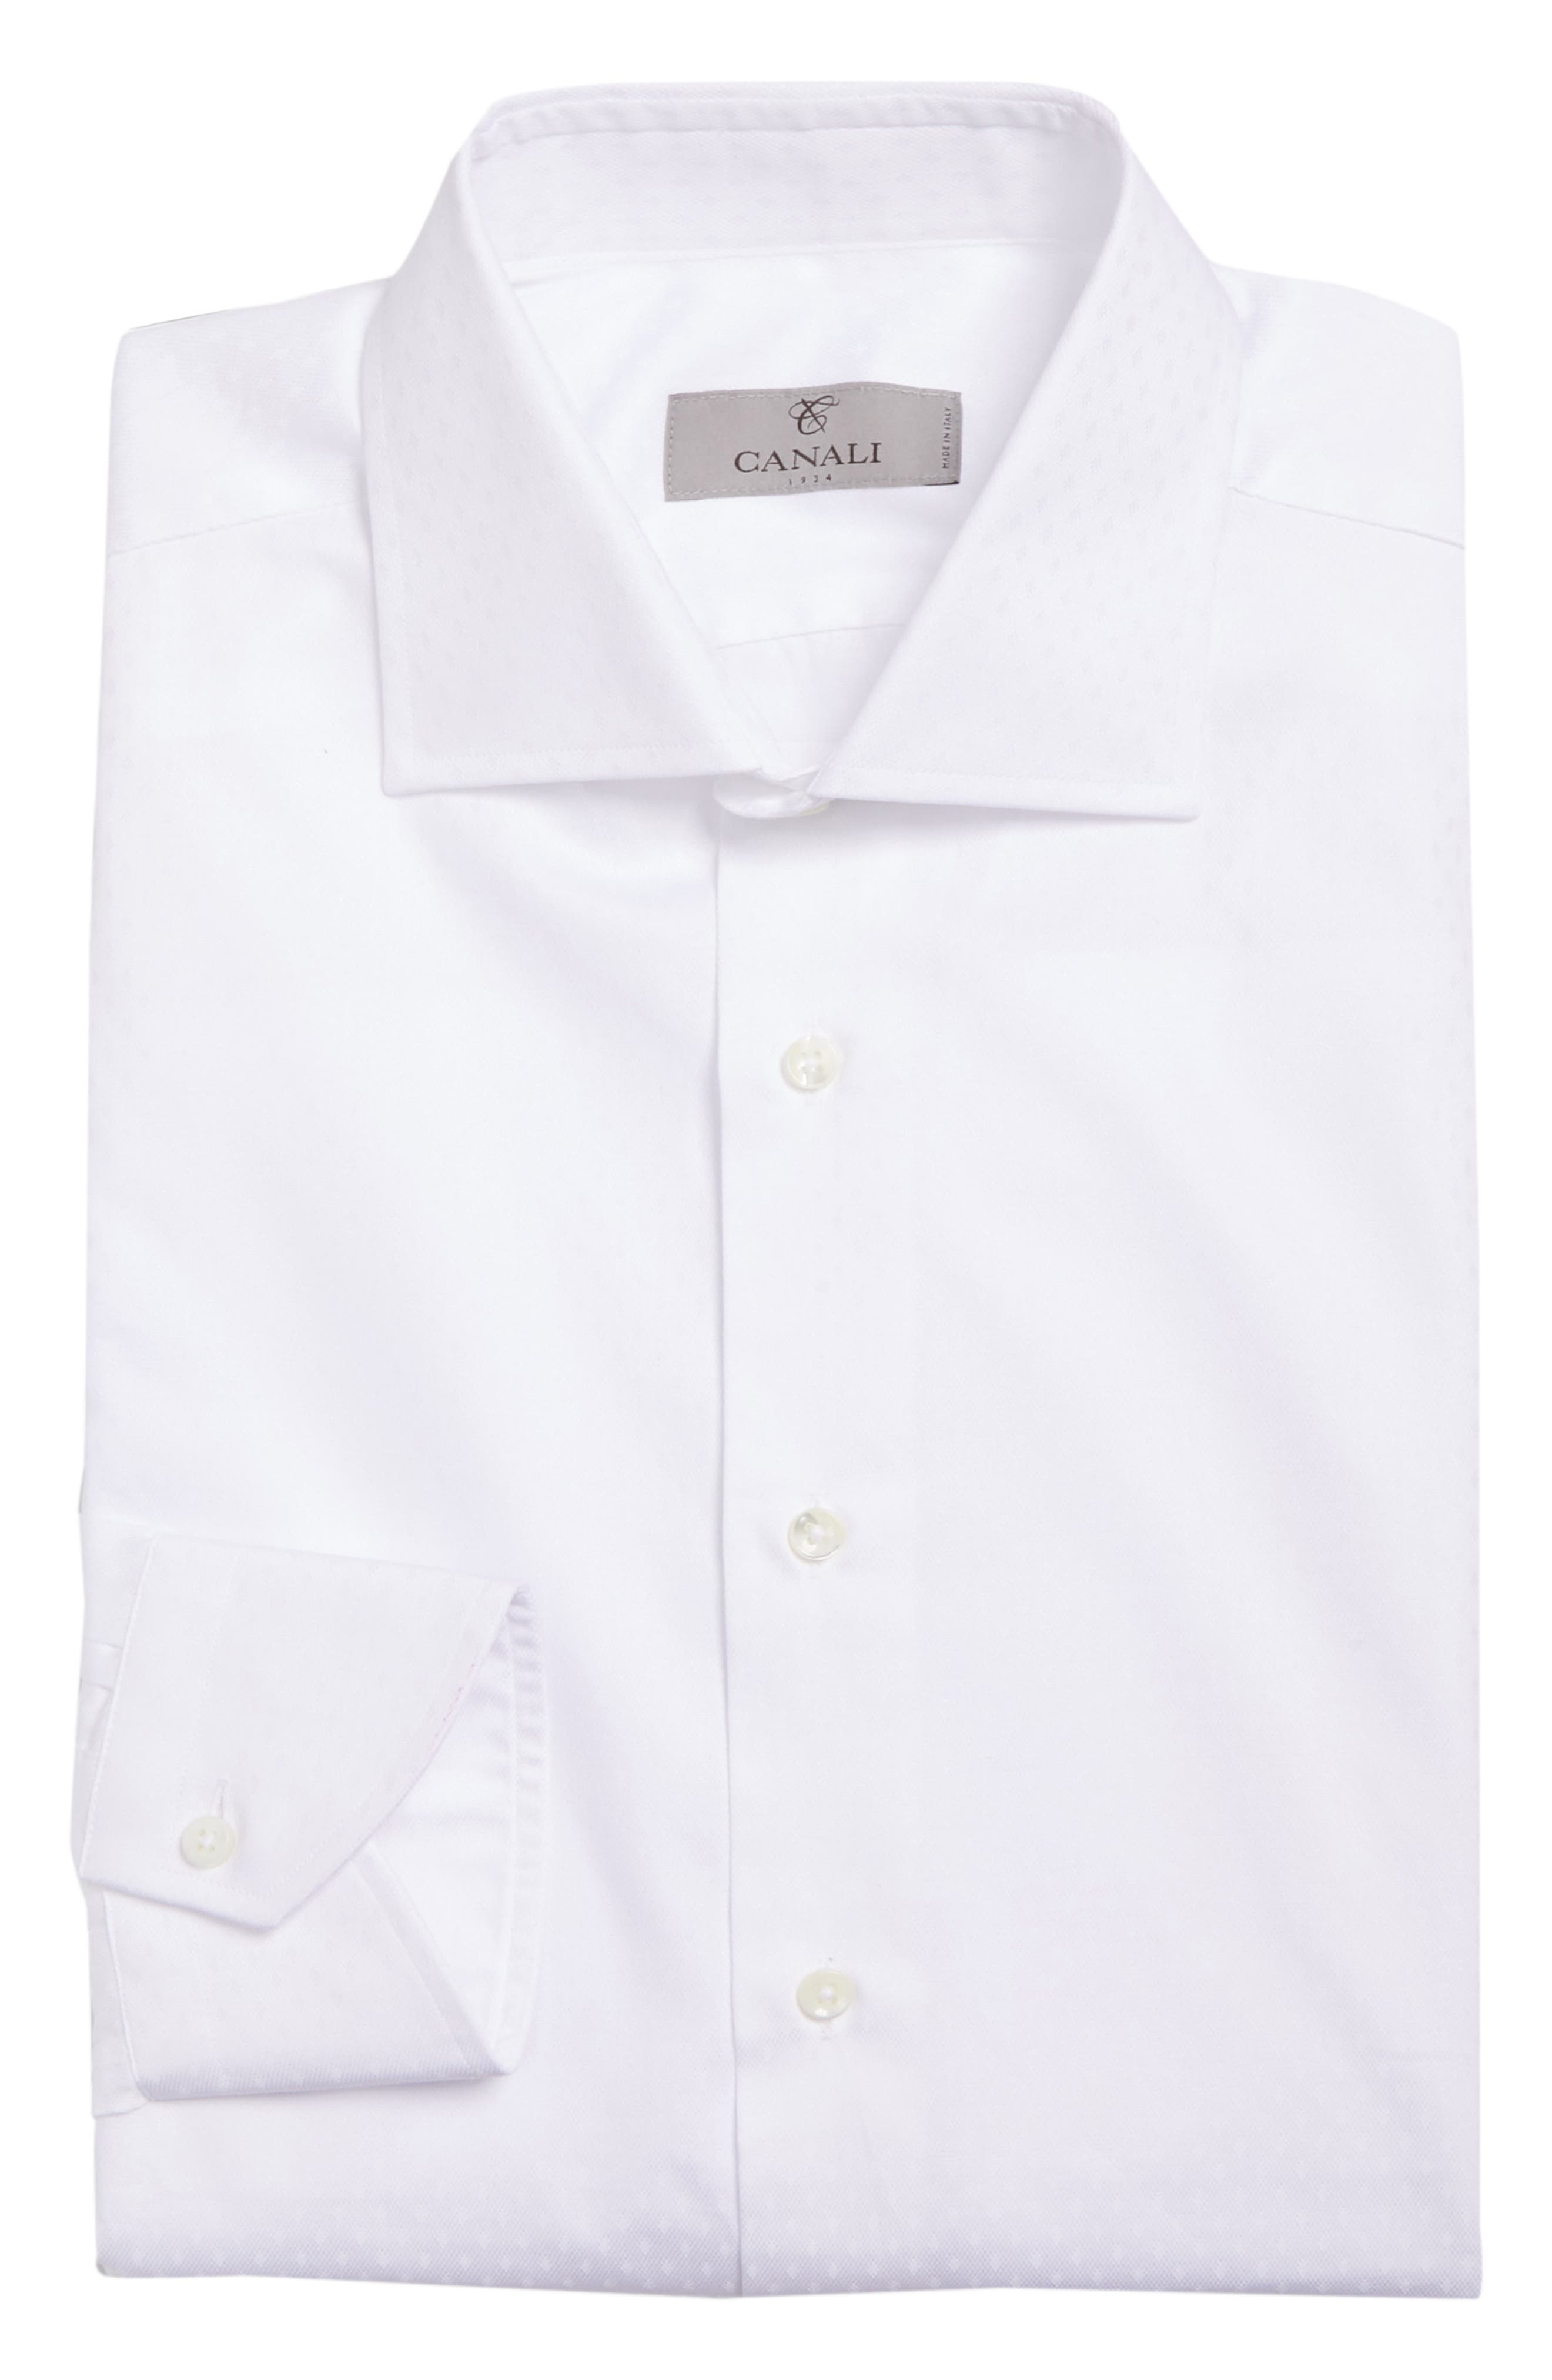 CANALI,                             Regular Fit Solid Dress Shirt,                             Alternate thumbnail 5, color,                             100